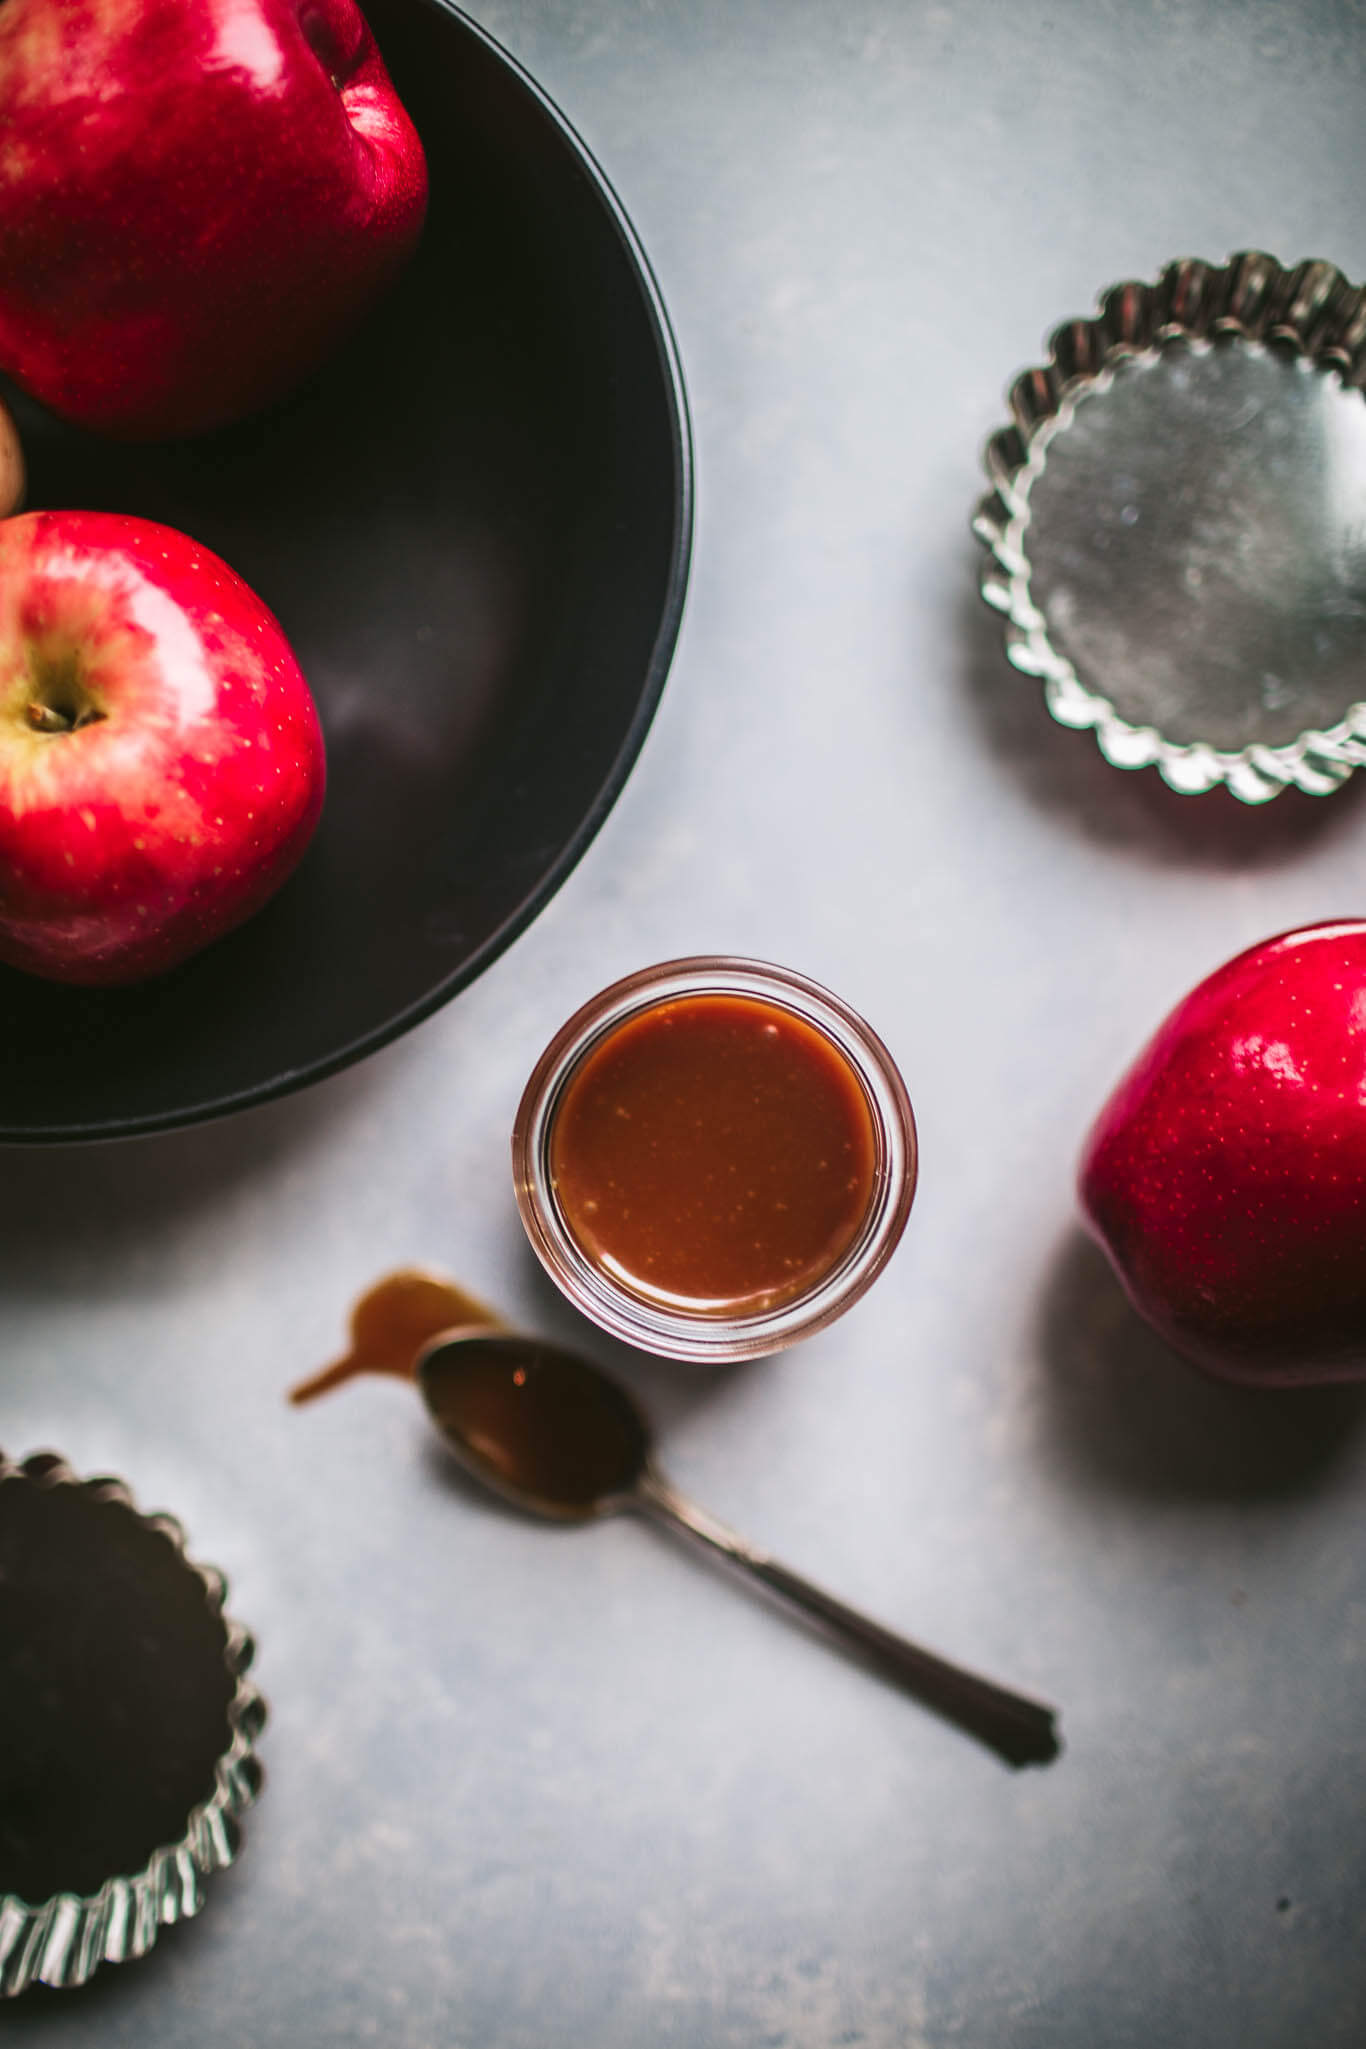 Salted caramel sauce next to bowl of apples.